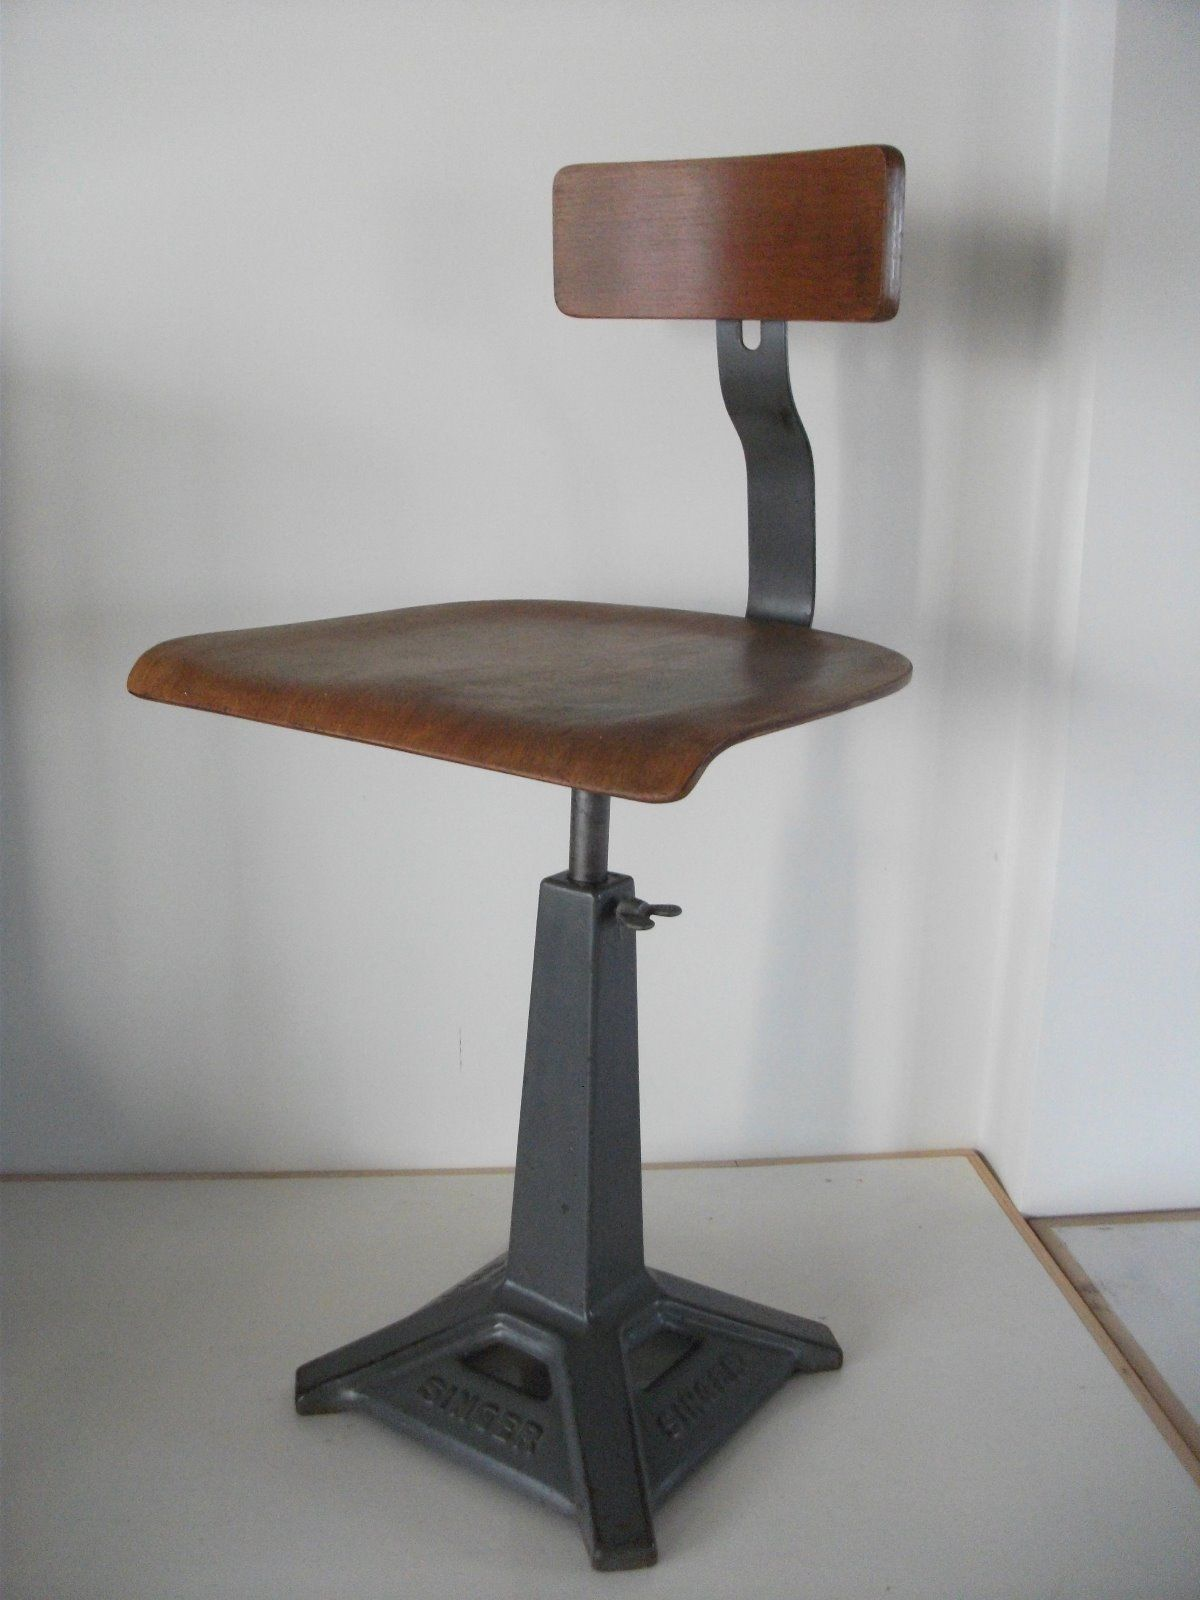 singer sewing machine chair vintage industrial stool